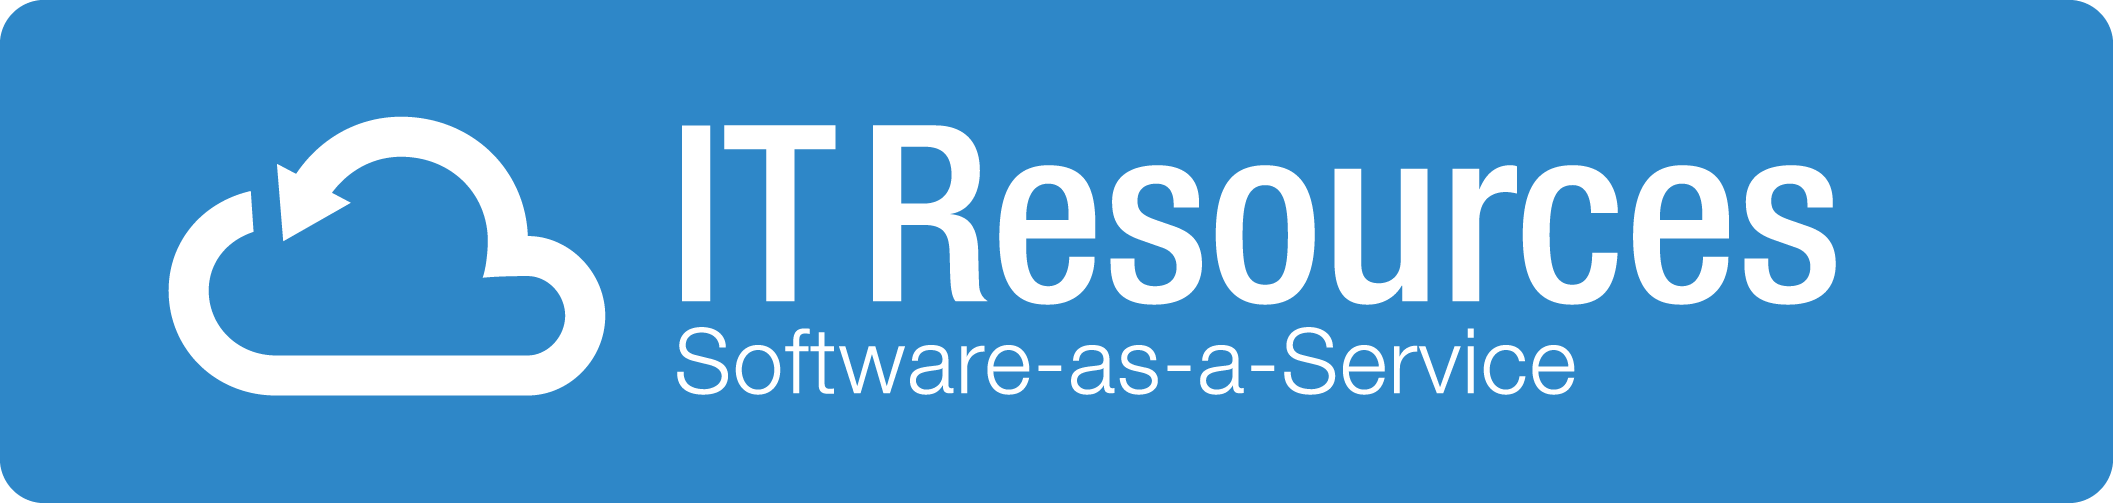 IT Resources - Software Development, Products, and Consulting